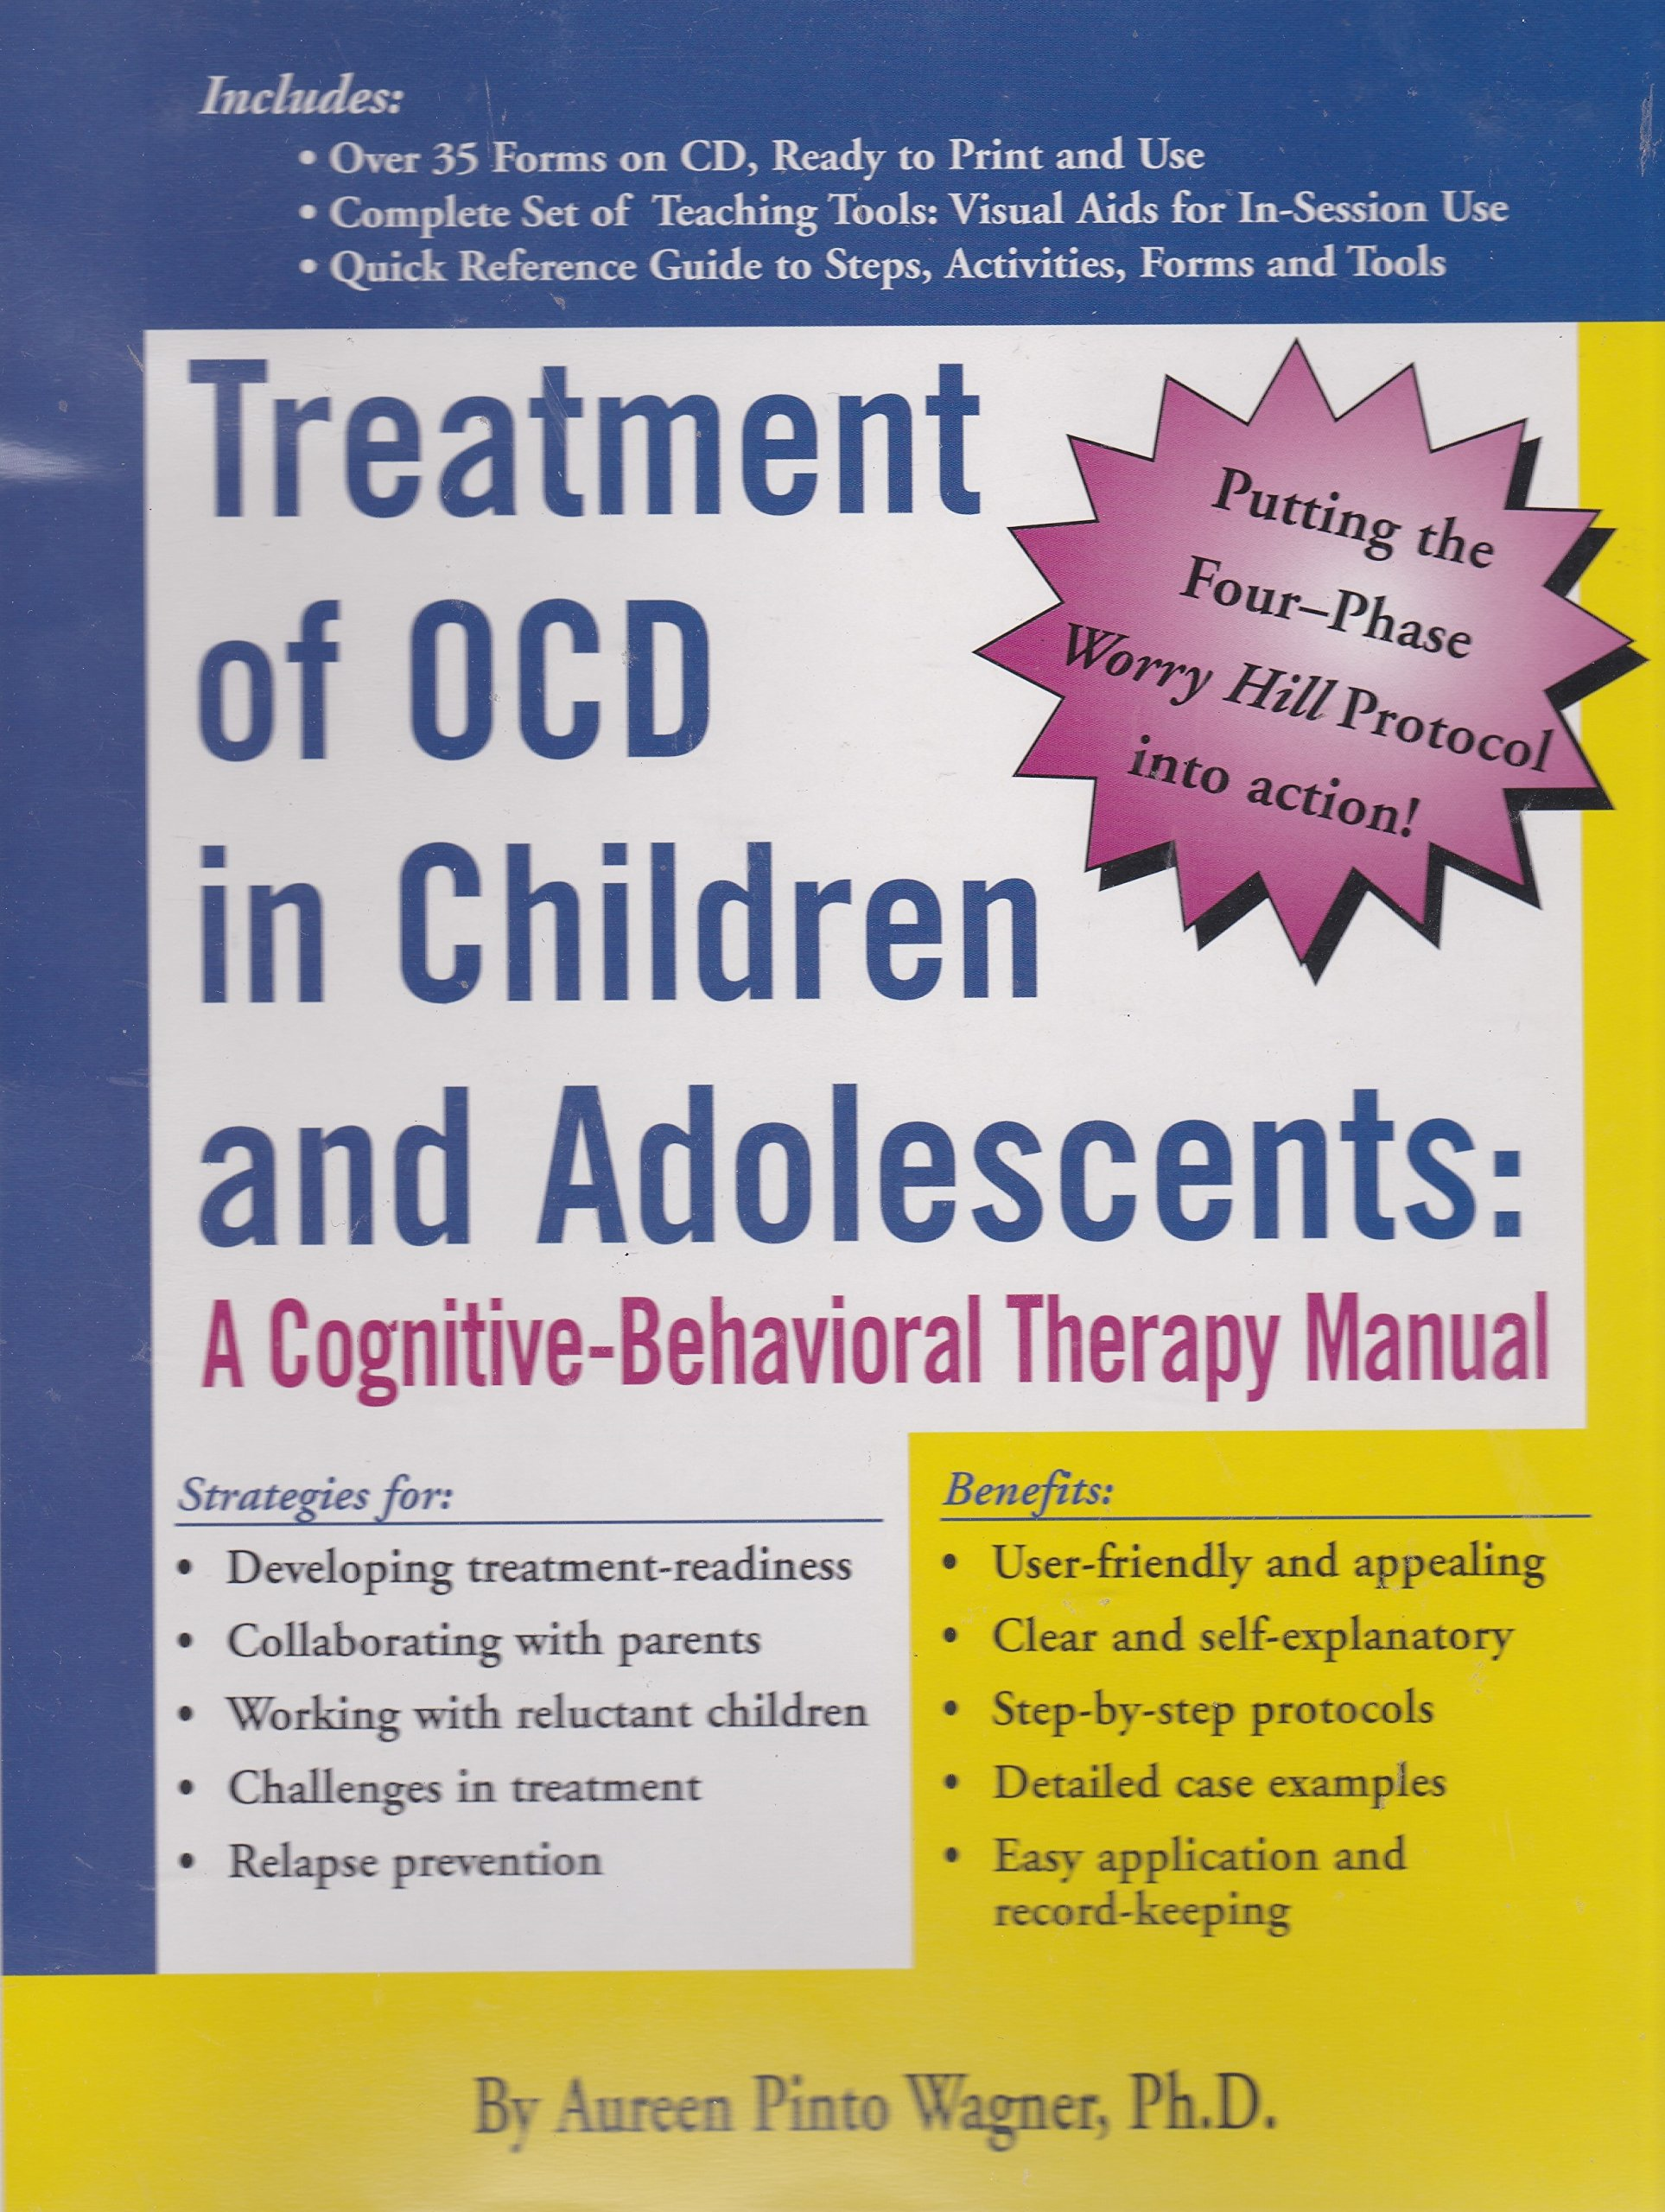 Treatment Of Ocd In Children And Adolescents A Cognitive Behavioral